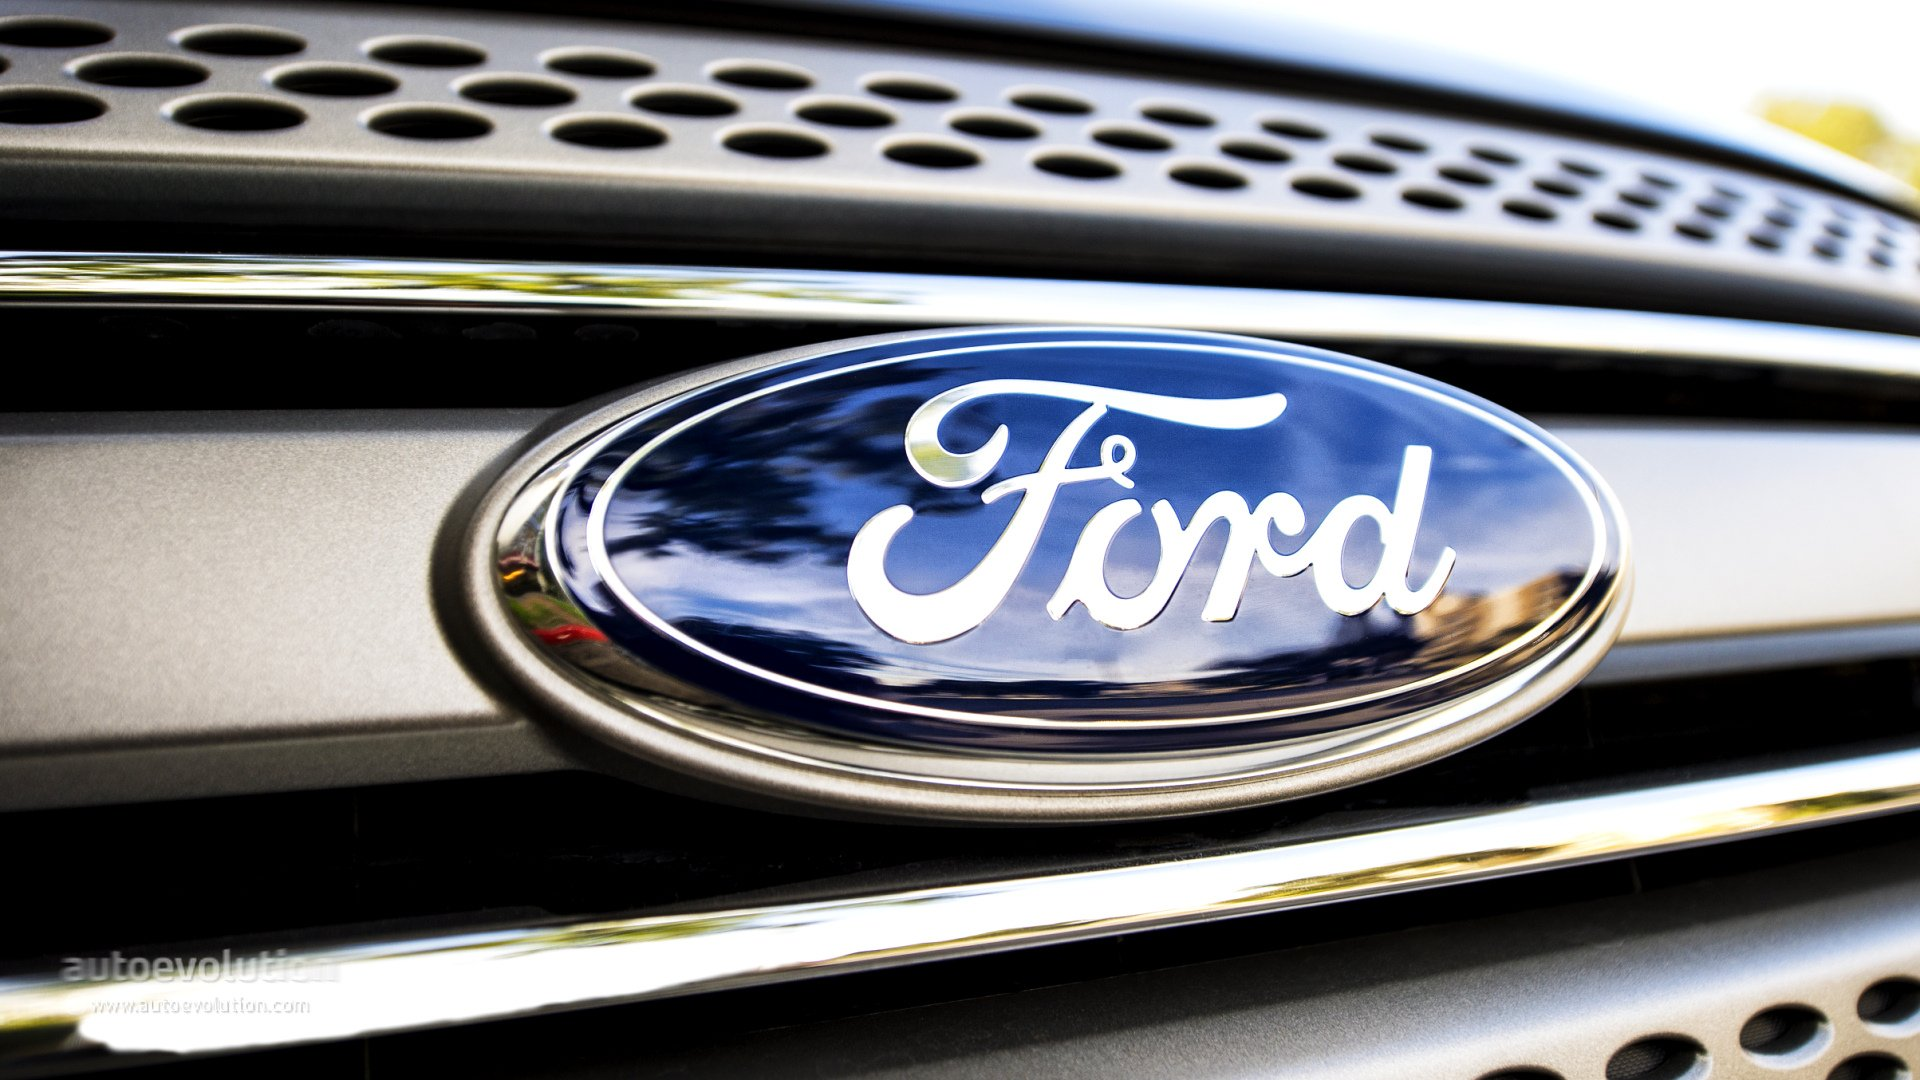 Ford Eyes Use of Customers' Personal Data to Boost Profits